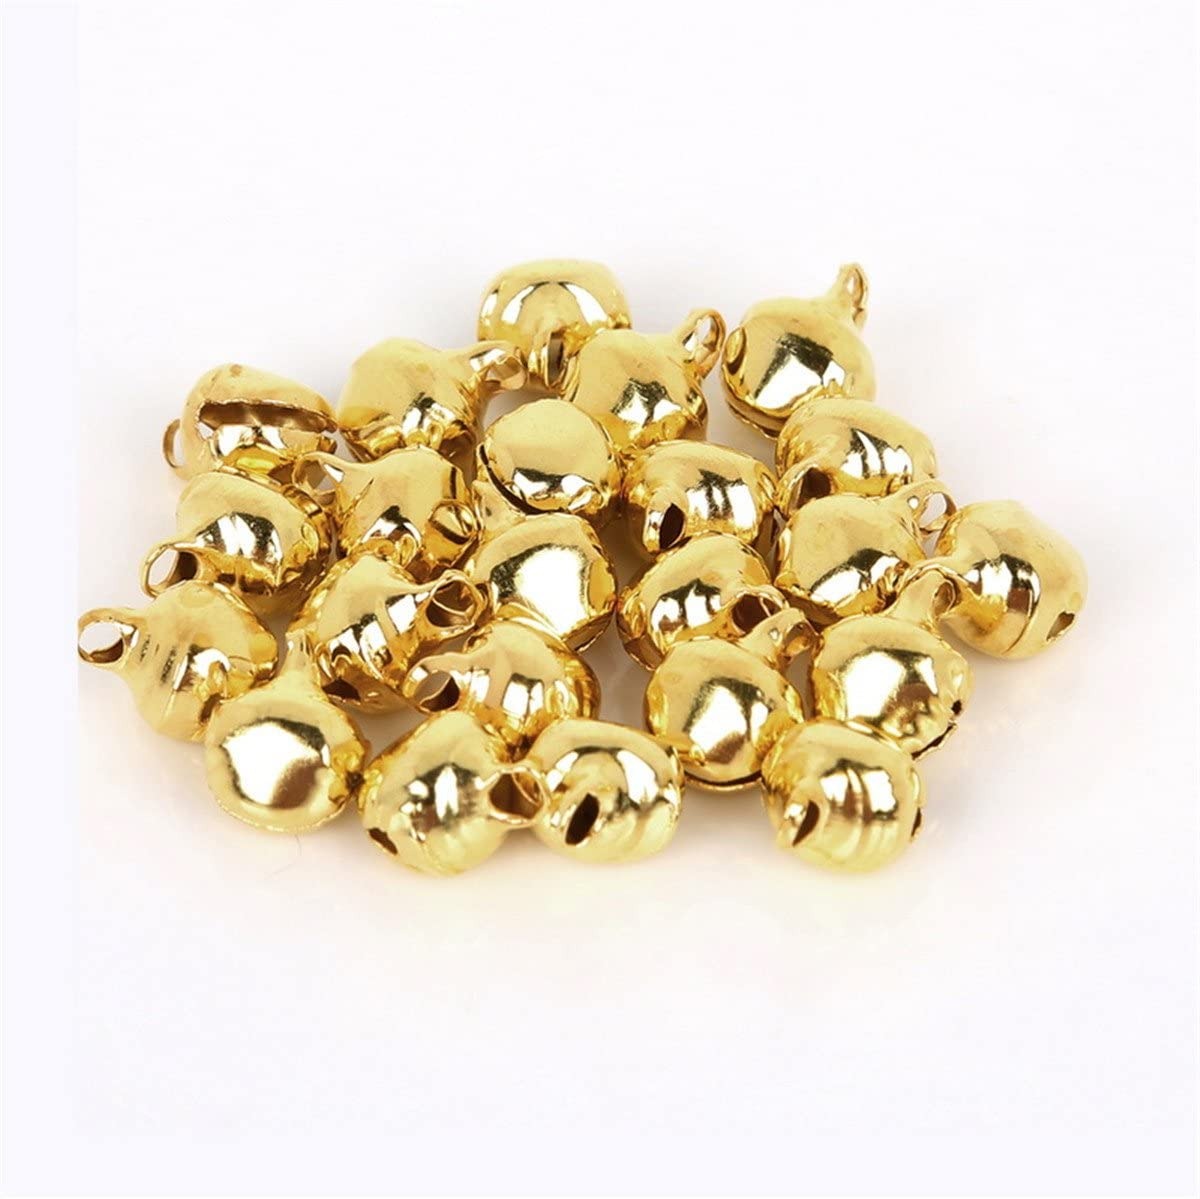 500 pcs Pack 6mm New Christmas Bells Assorted Color Loose Beads Small Jingle Bells Christmas Decoration Gift Pendant Charms Dog Cat Collar Craft Bells Bag Parts B : 6mm 500pcs